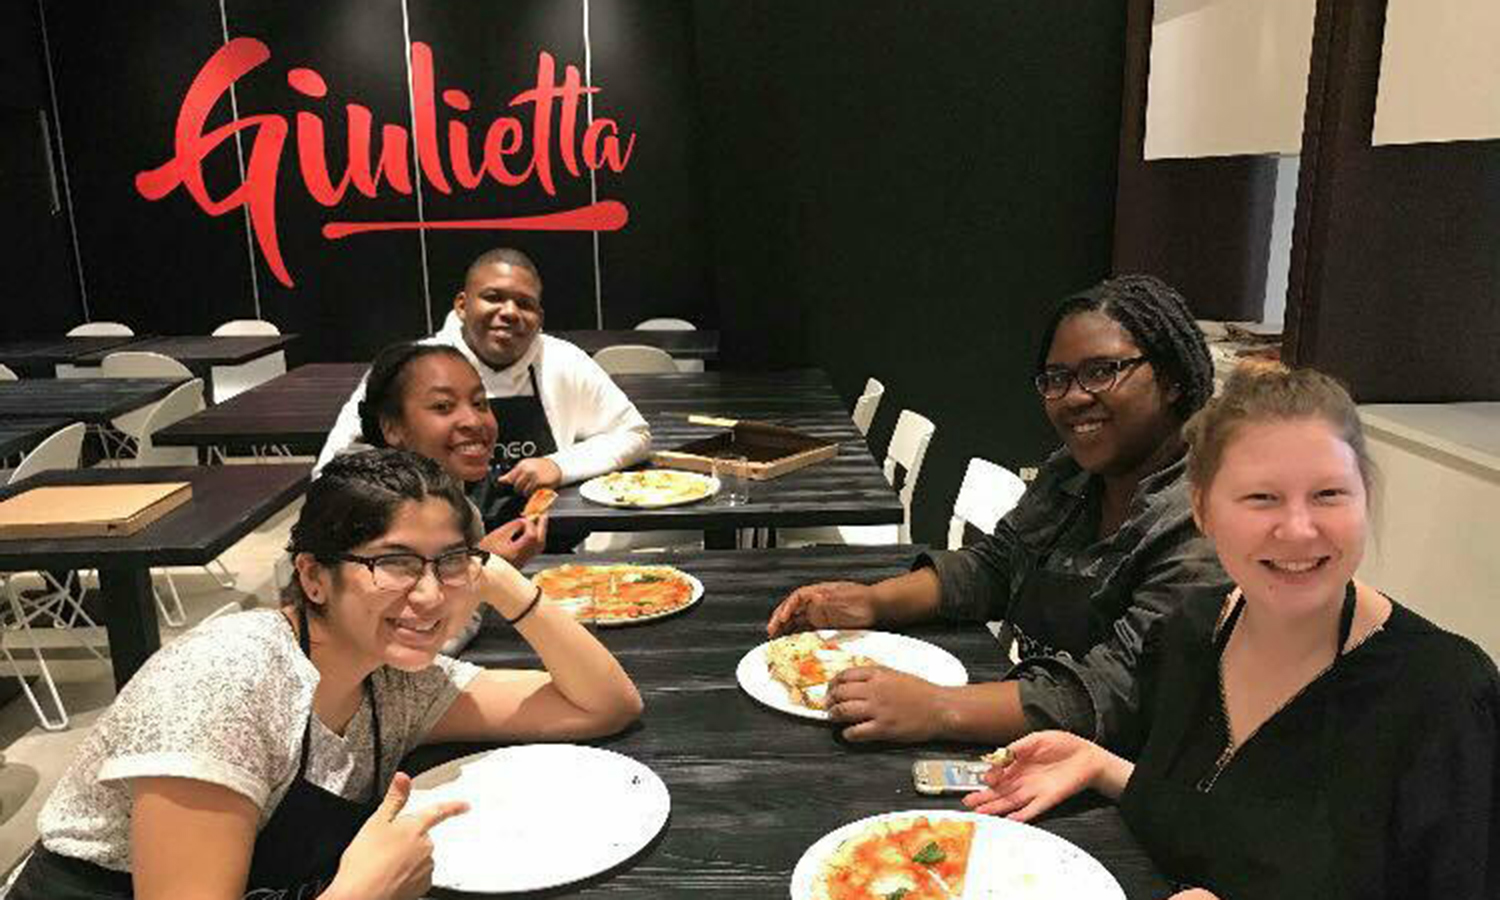 HWS students from the Rome and England study aborad programs unite for a pizza making workshop at Giulietta Pizzeria in Rome, Italy.